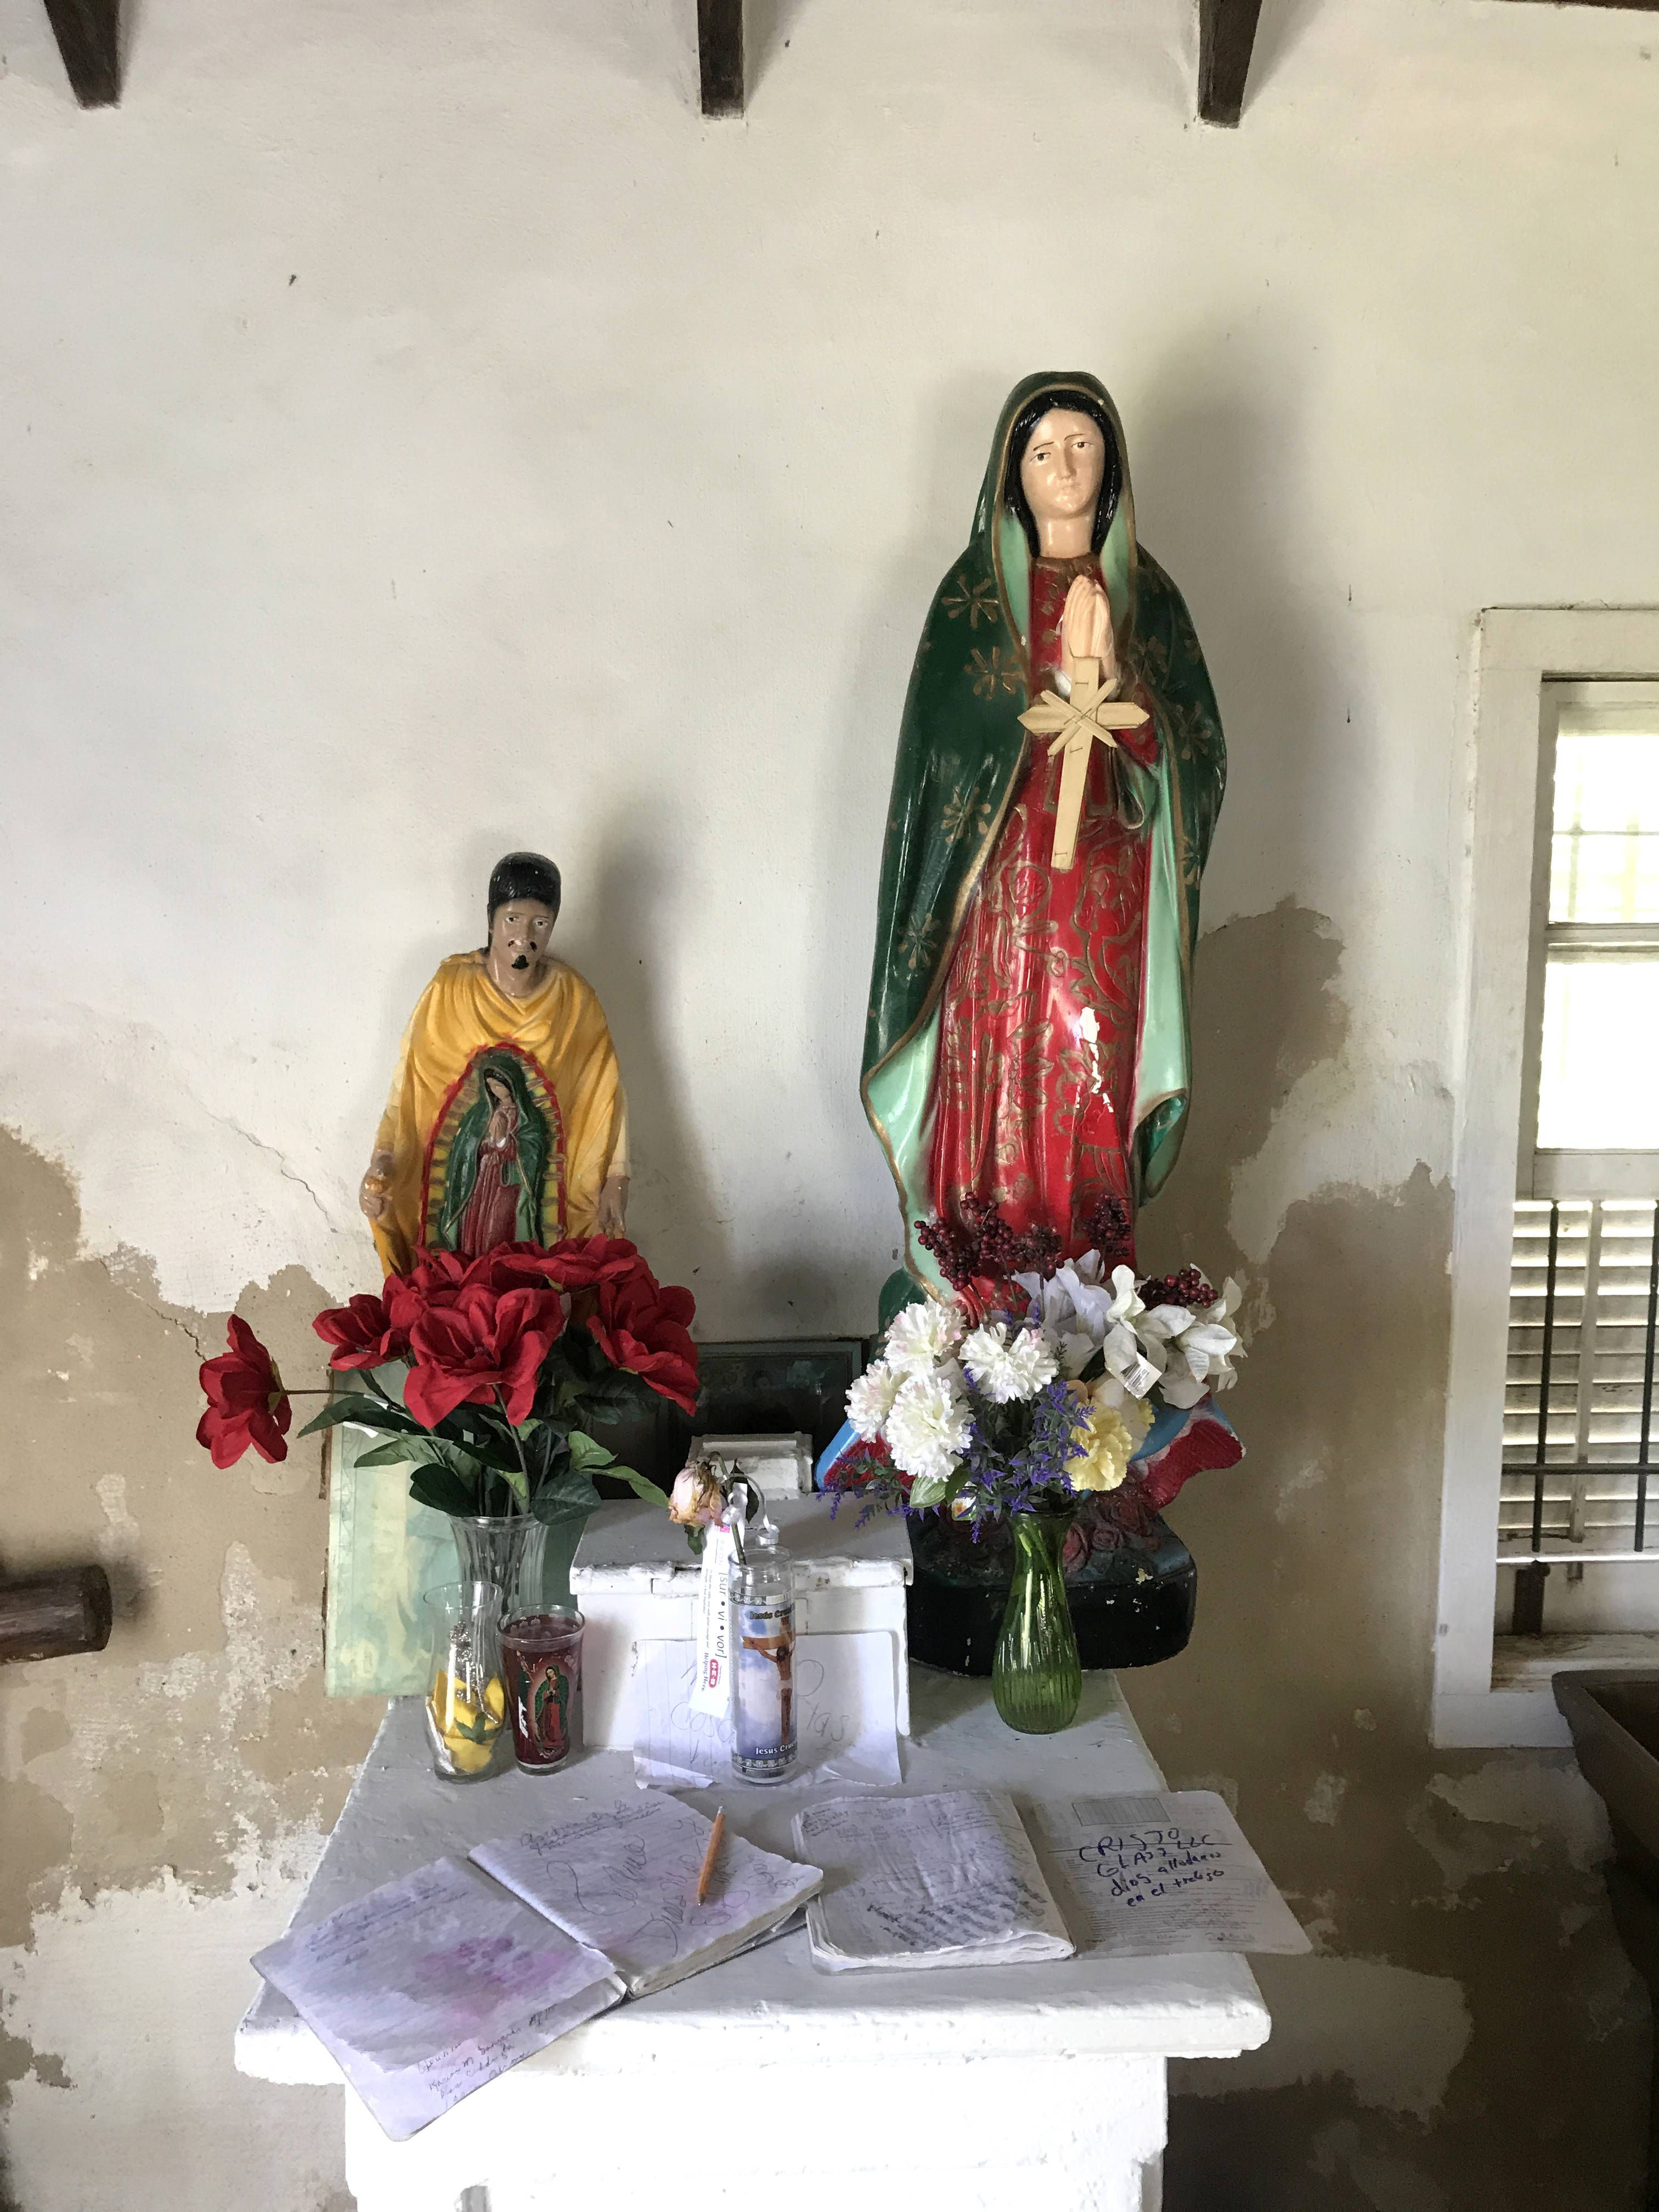 La Lomita has become a place of respite in Mission, which got its name from the tiny chapel.